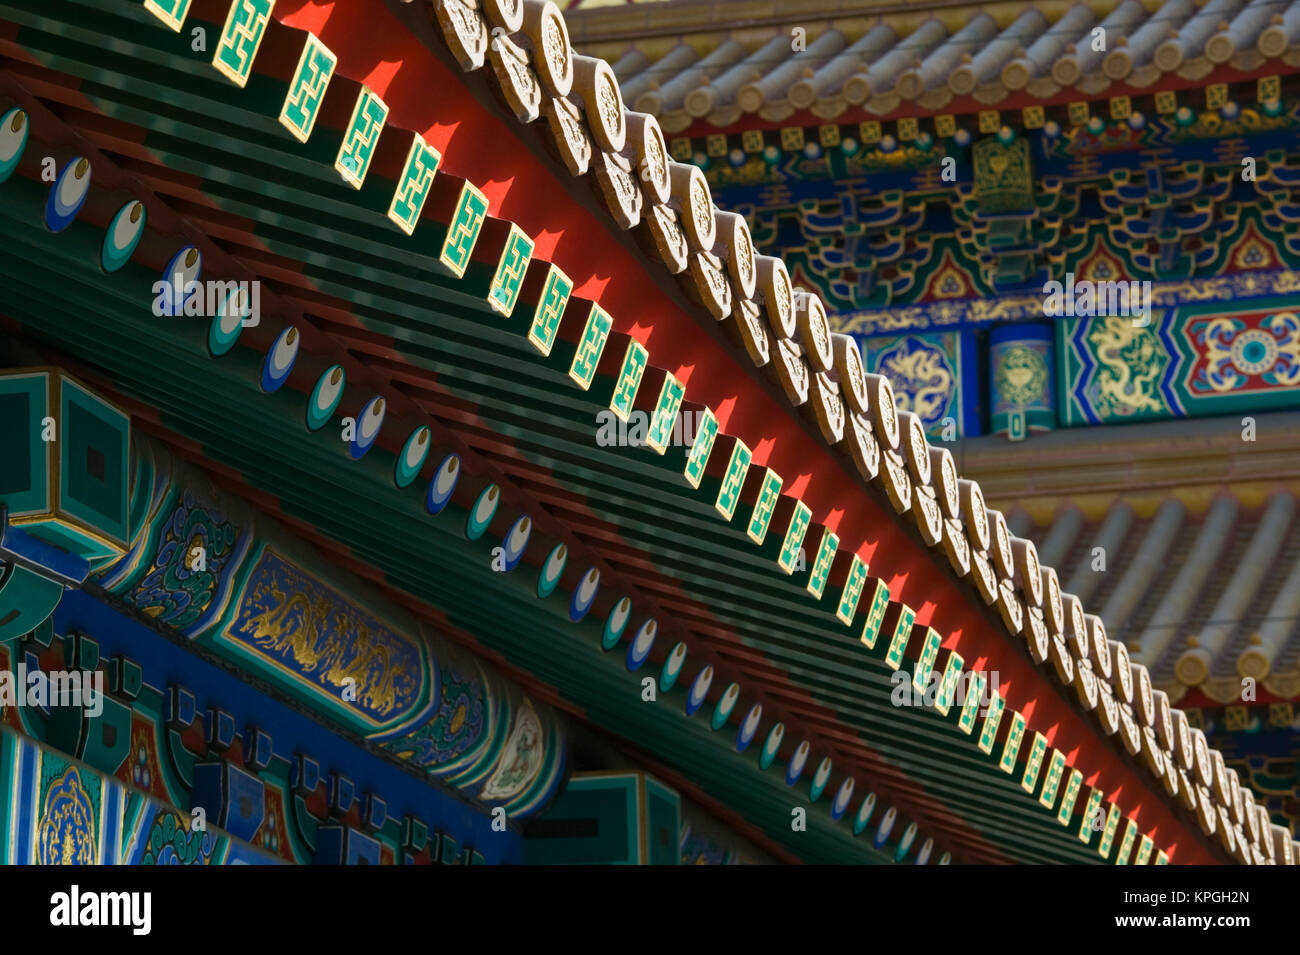 China, Beijing, The Forbidden City. Detail of the Gate of Supreme Harmony. - Stock Image